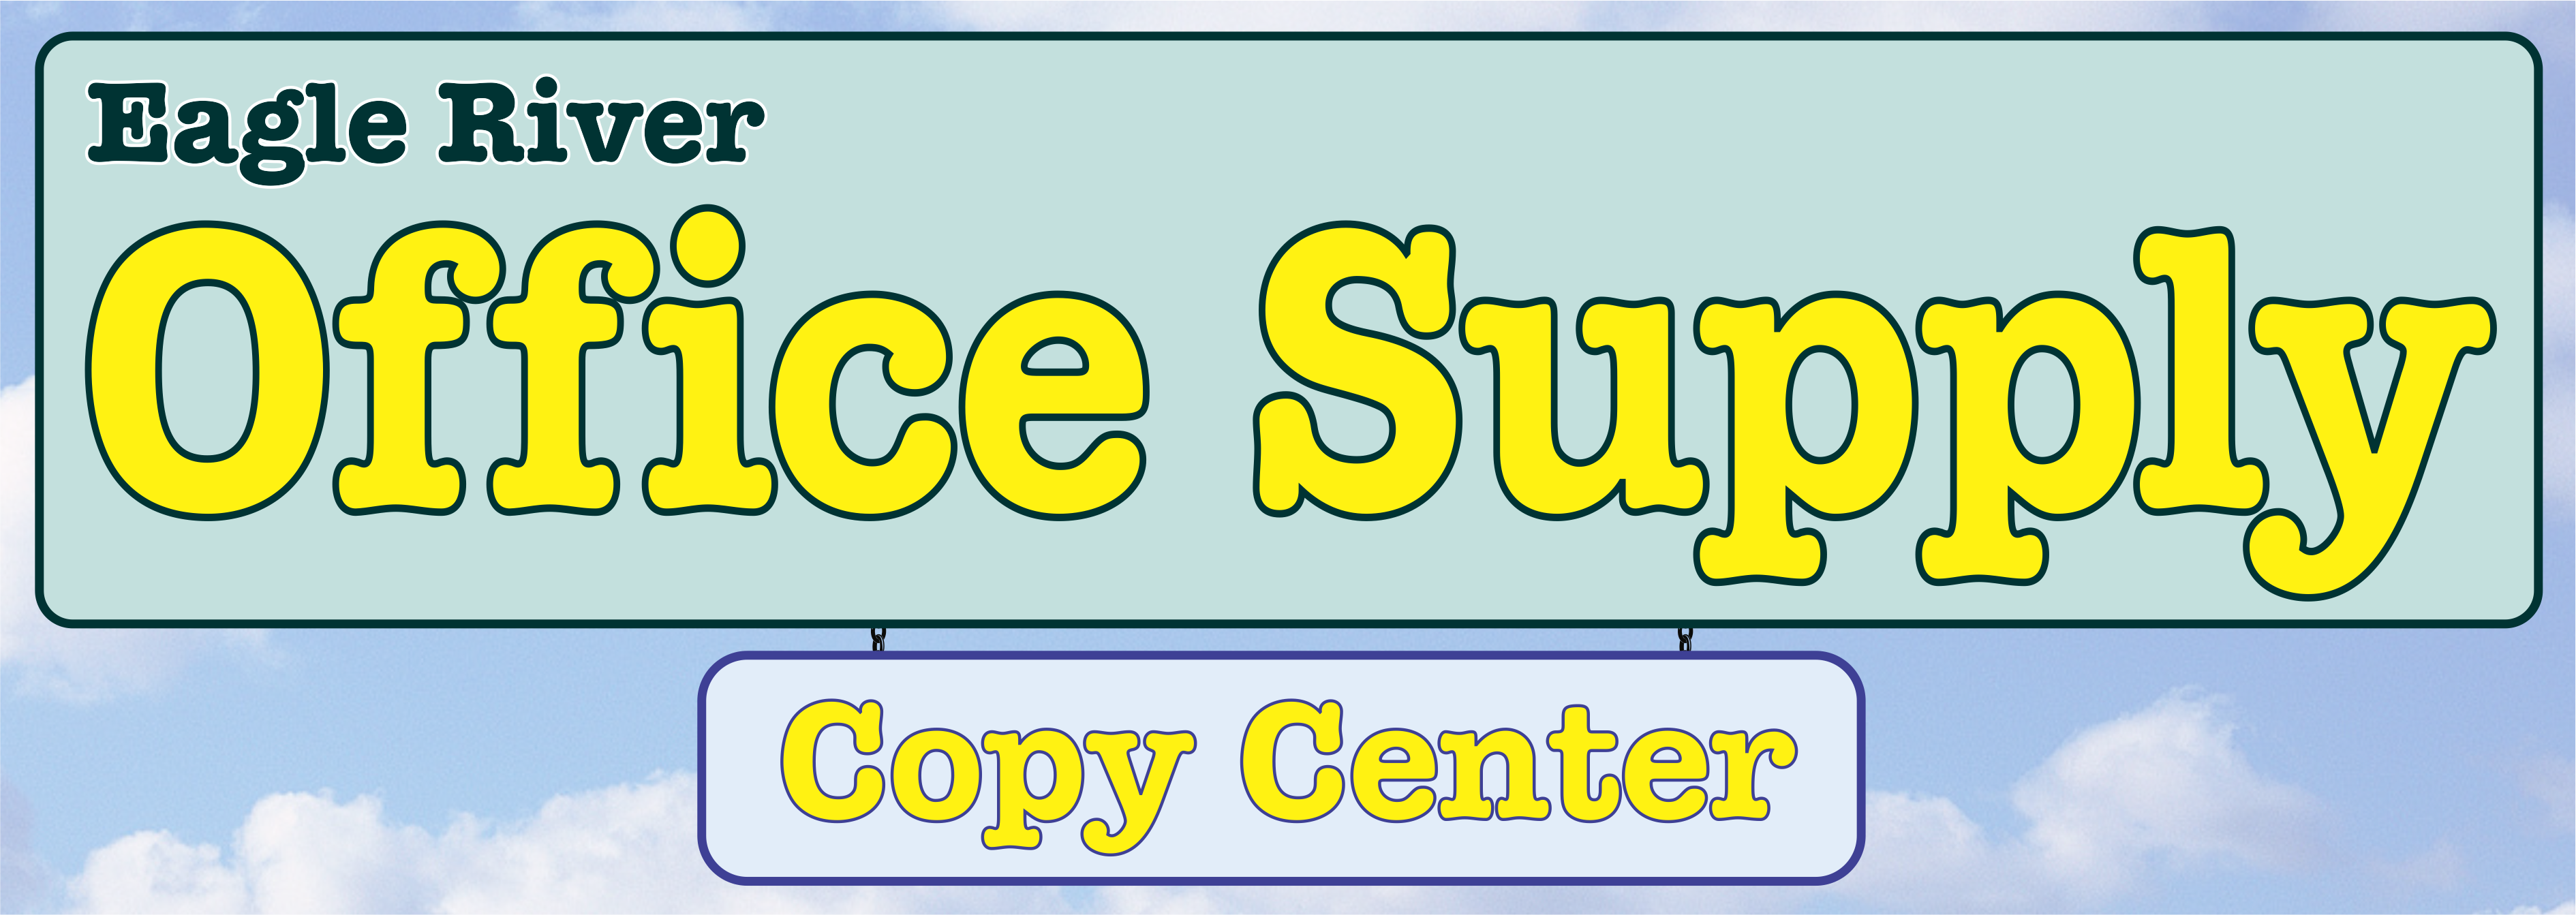 Eagle River Office Supply And Copy Center